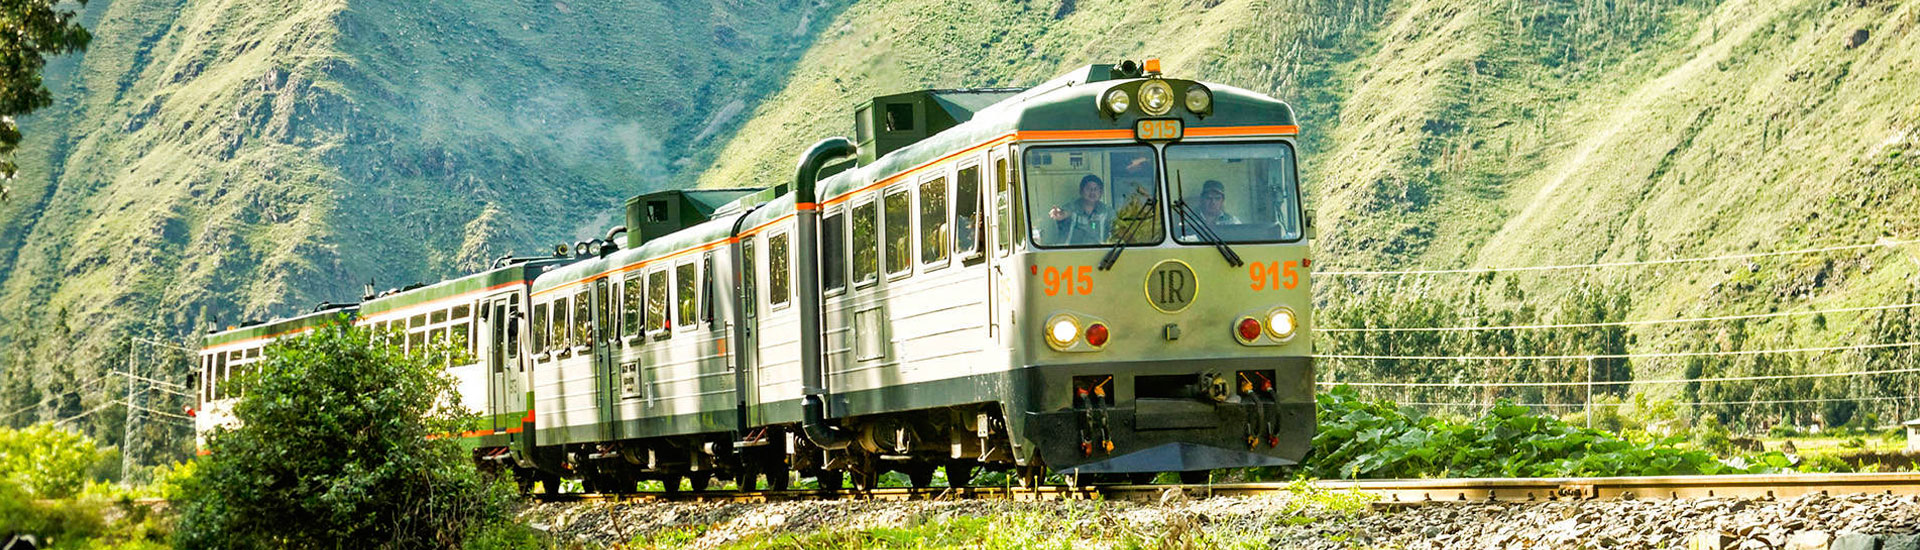 Machu Picchu by Train 01 Day Tour (Group Service)